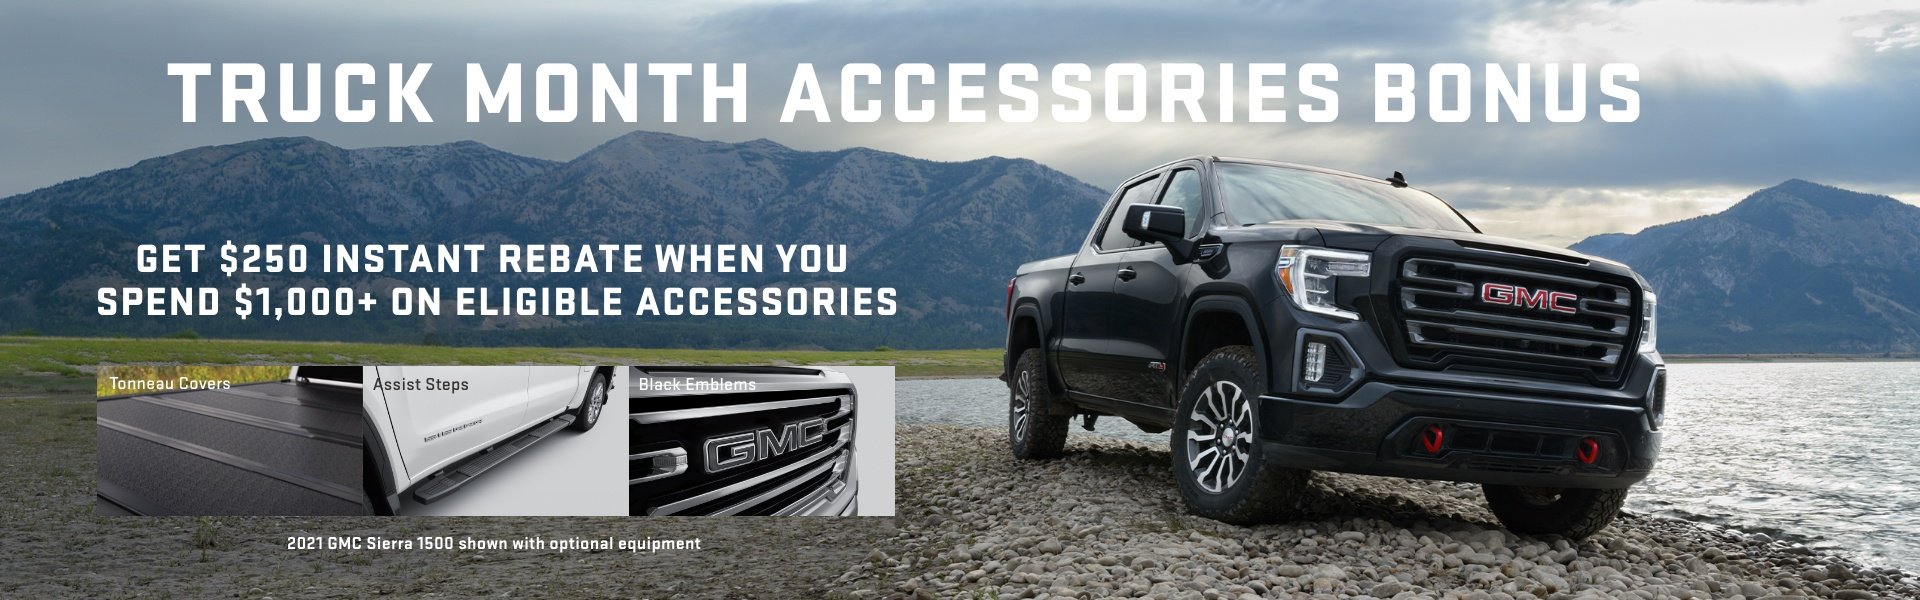 GMC Accessories Truck Month bonus - EN